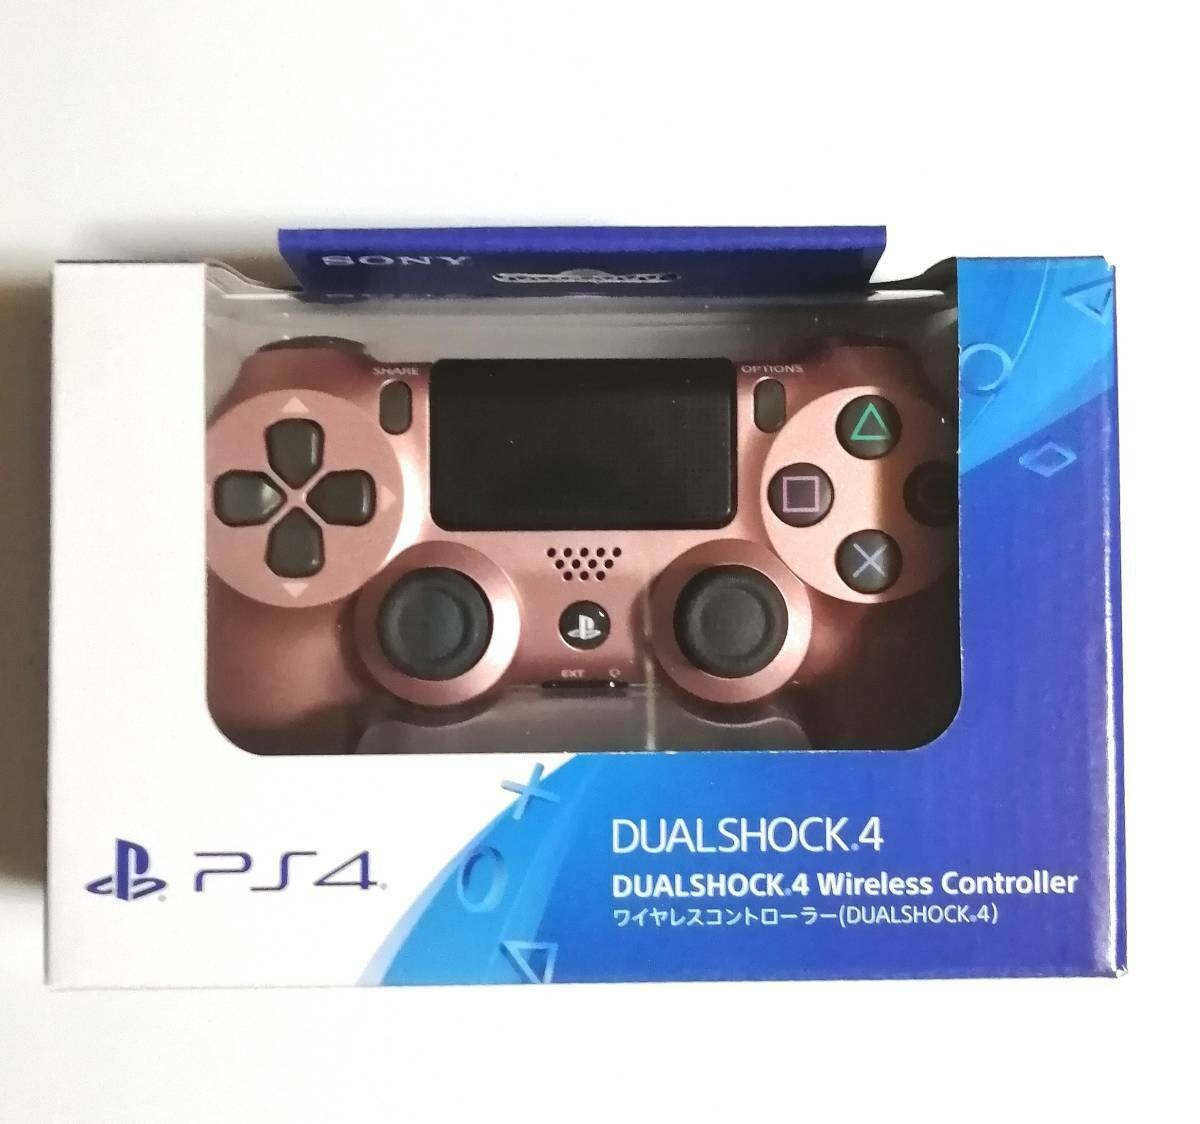 Dual Shock Rose Gold Cuh-Zct2J27 Ps4 Genuine Controller Japan Edition